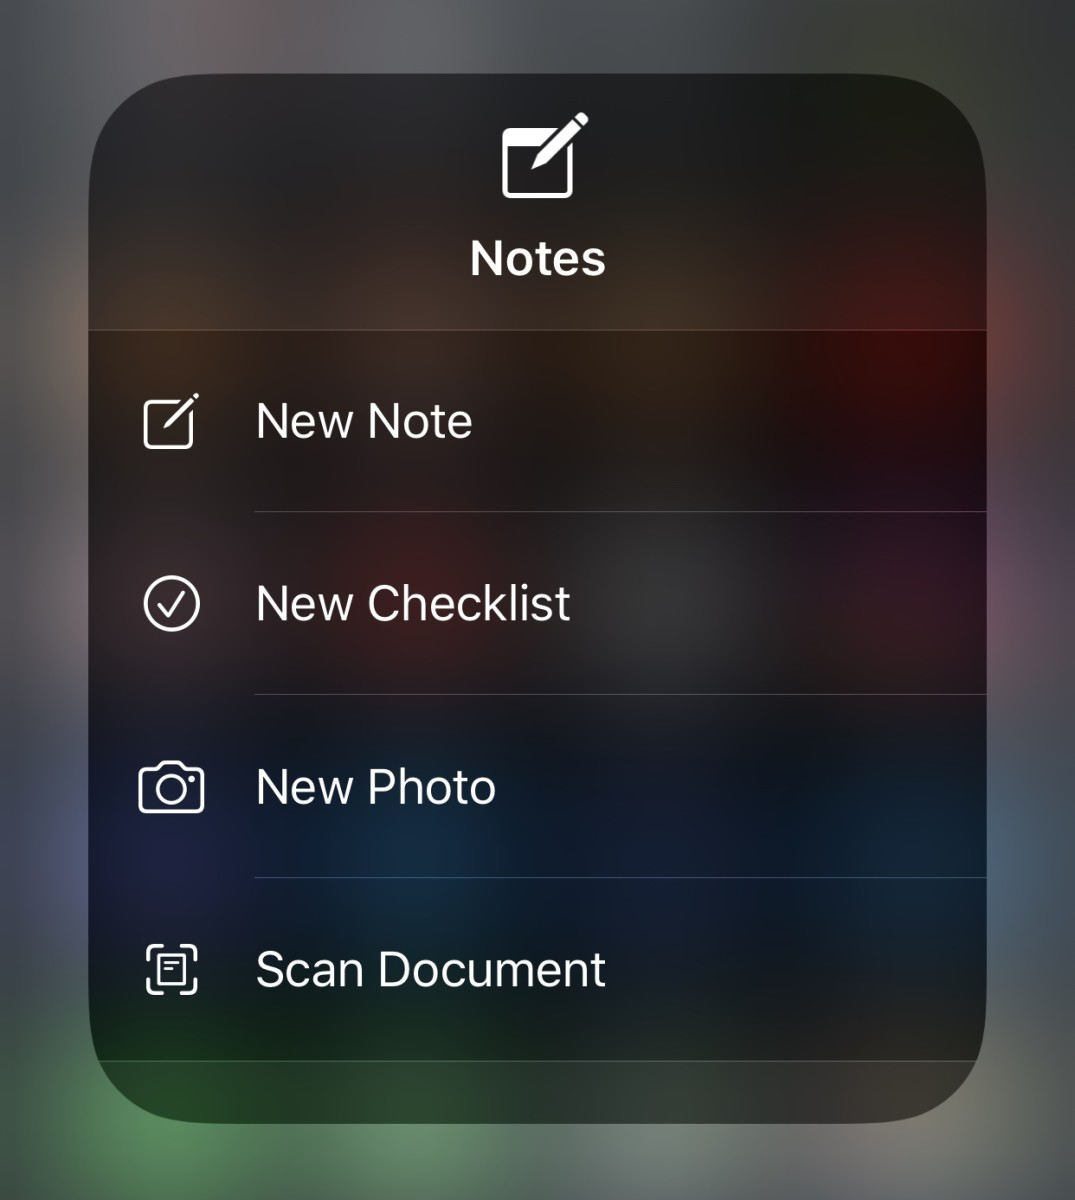 Press and hold the Notes icon in Control Center for some quick note taking options